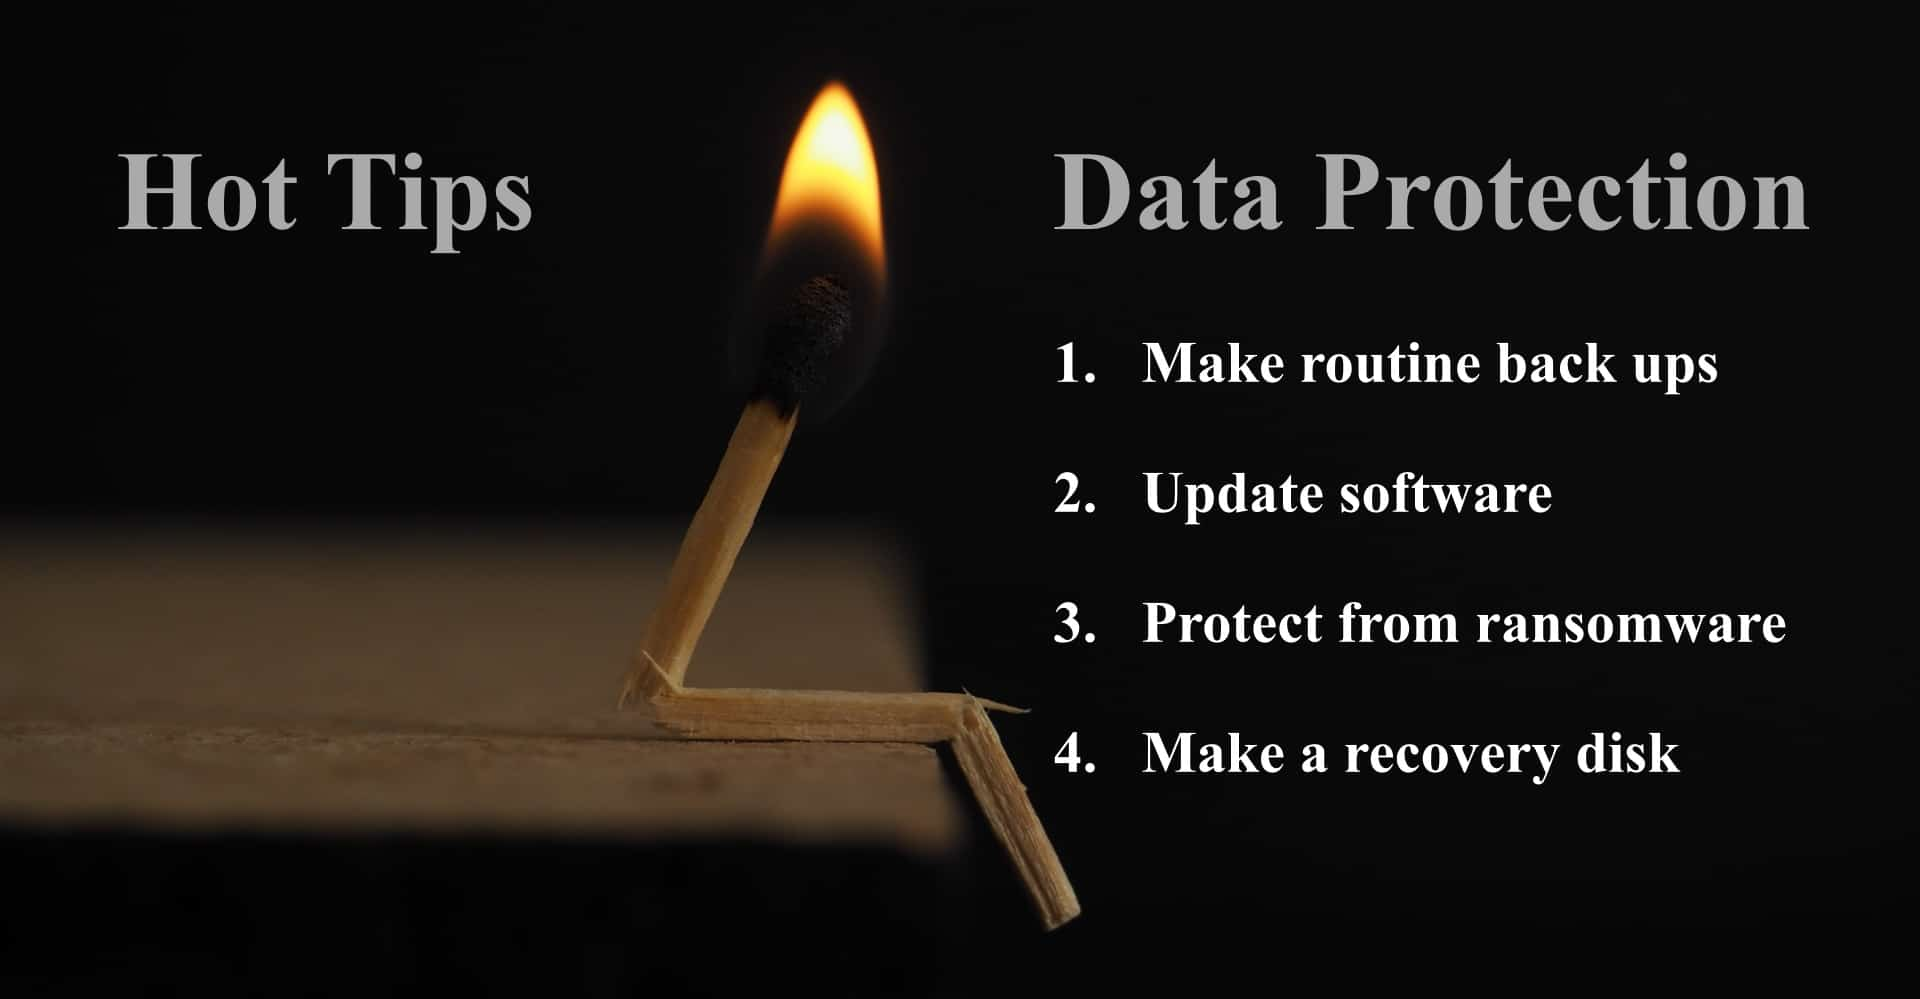 Read the full article Data Protection – 4 Hot Tips